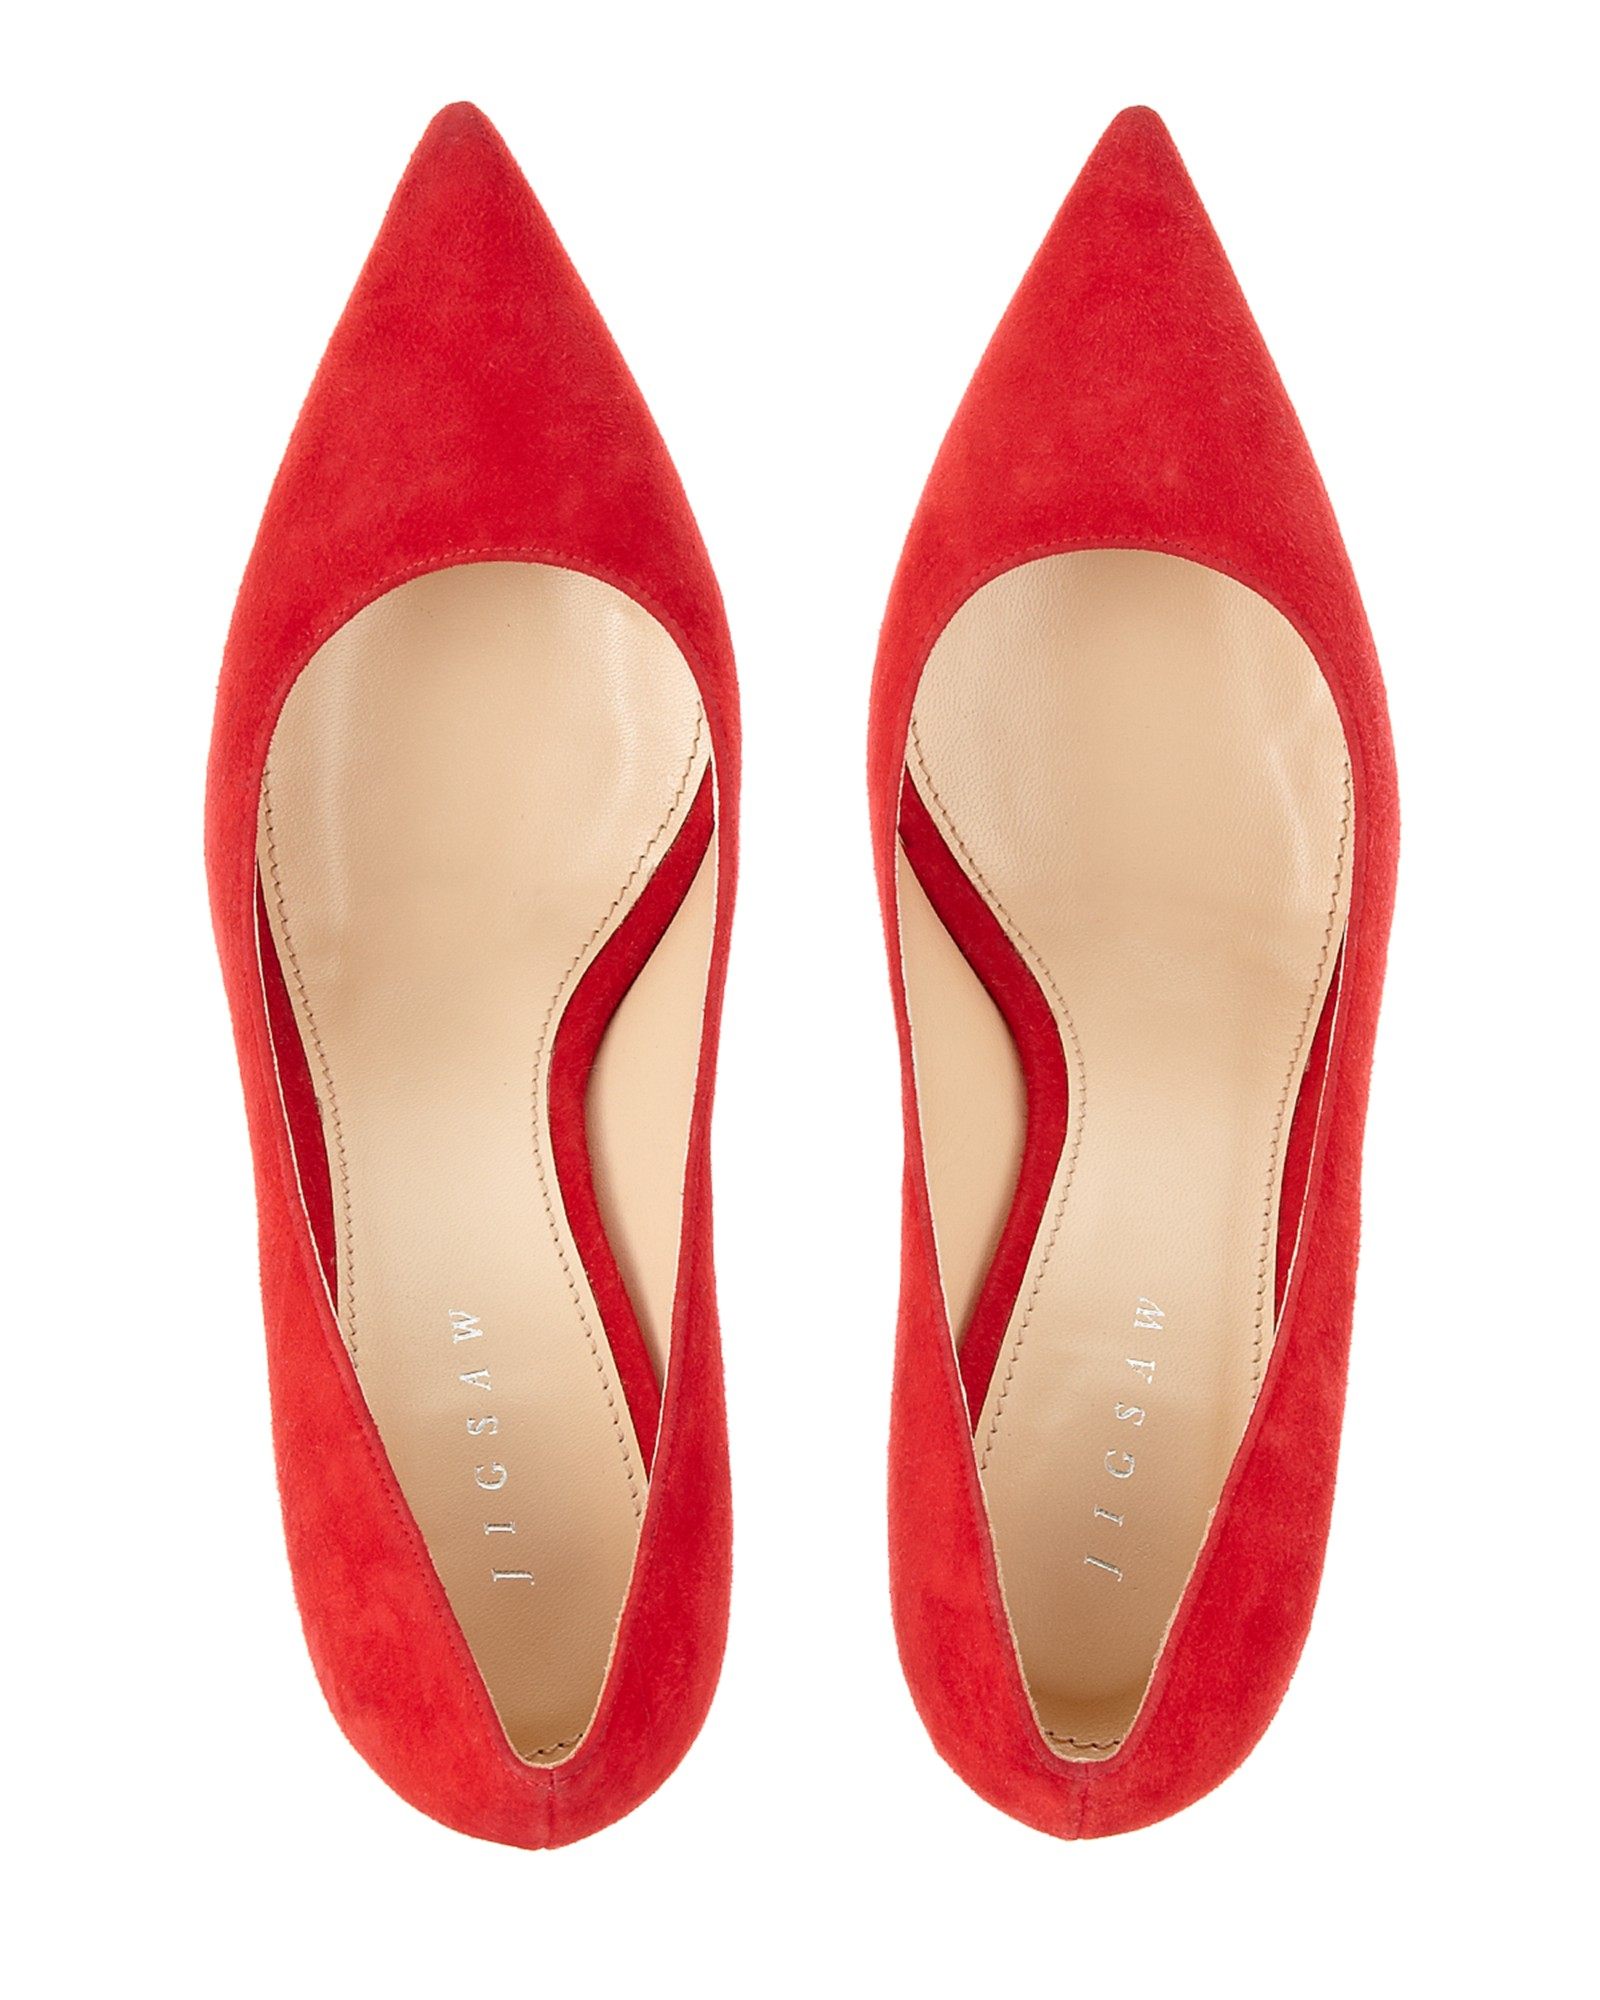 Red Suede Kitten Heels - Is Heel